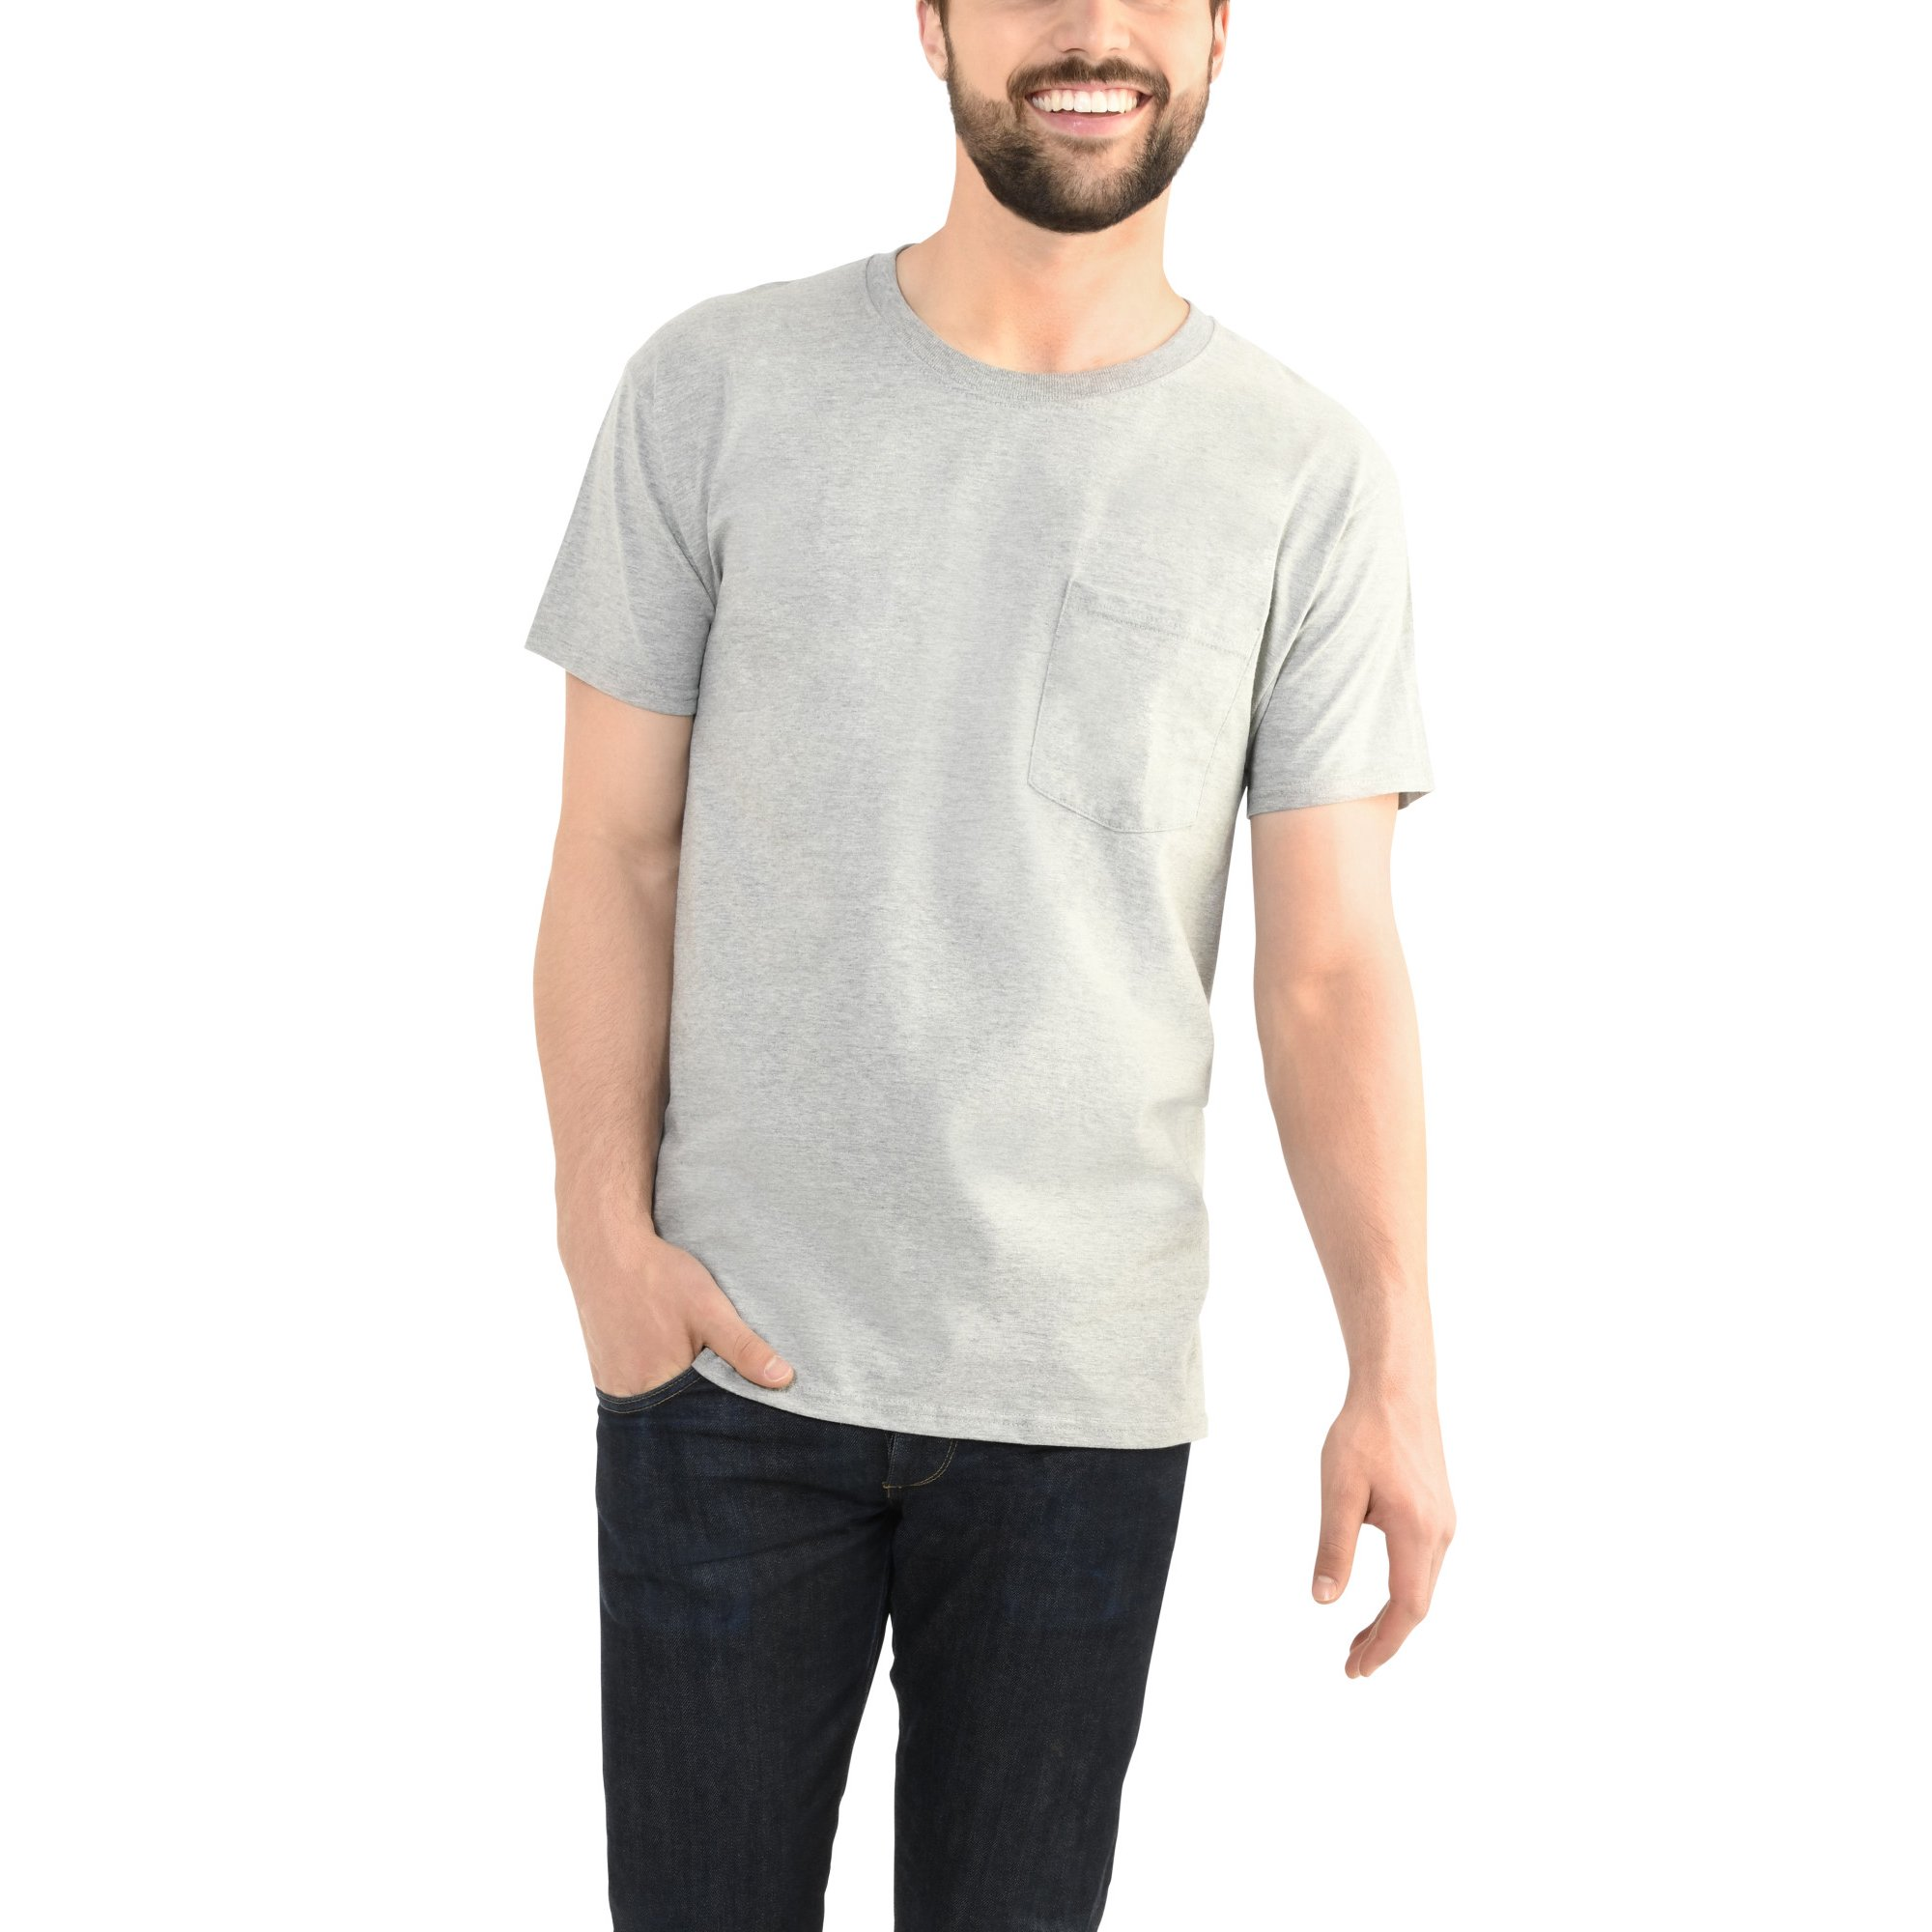 7a041741 Fruit of the Loom Men's Platinum Eversoft Short Sleeve Pocket T-Shirt, up to  Size 4XL